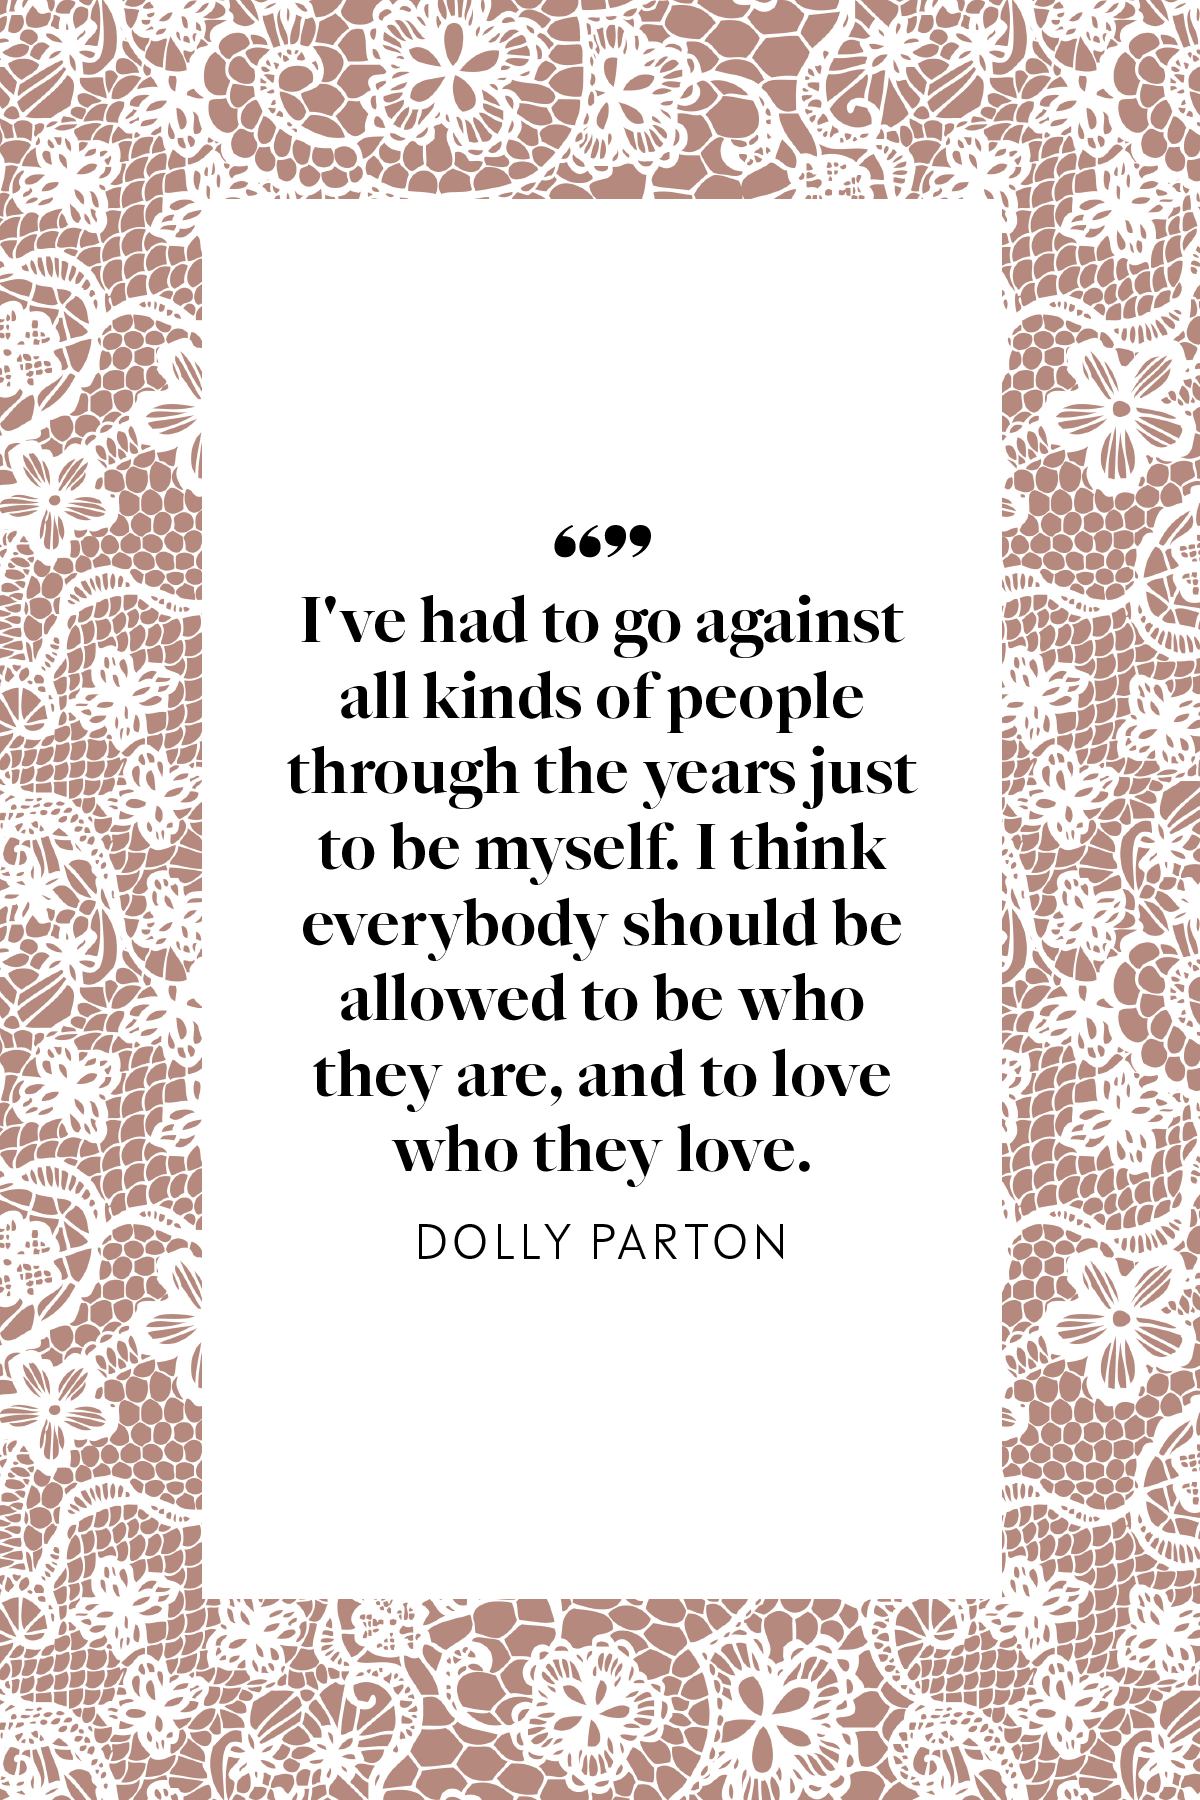 26 Best Dolly Parton Quotes On Love Work Life And Marriage